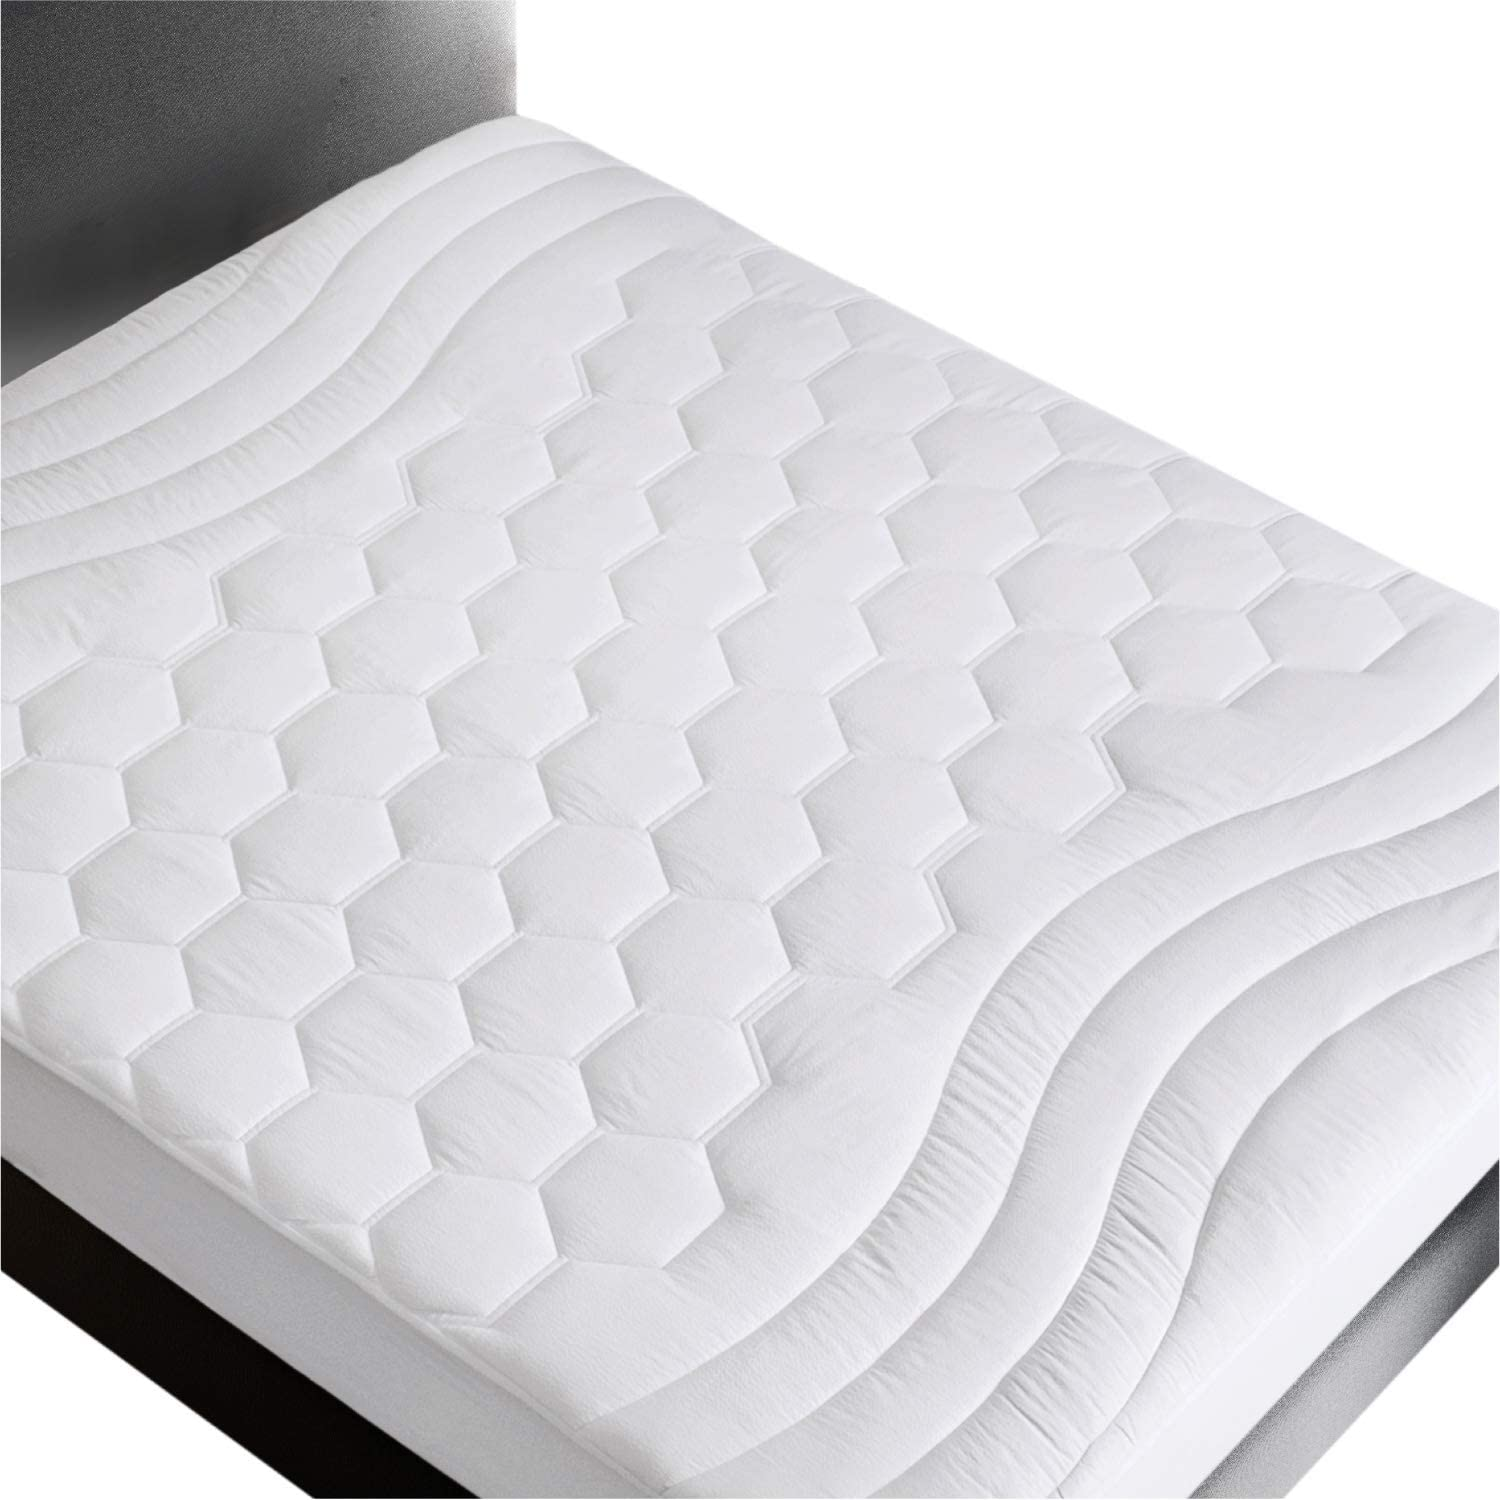 Bedsure Mattress Pad King Size(78x80 inches)- Breathable - Ultra Soft Quilted Mattress Pad Protector Deep Pocket(up to 18'' deep), Fitted Sheet Mattress Cover-White